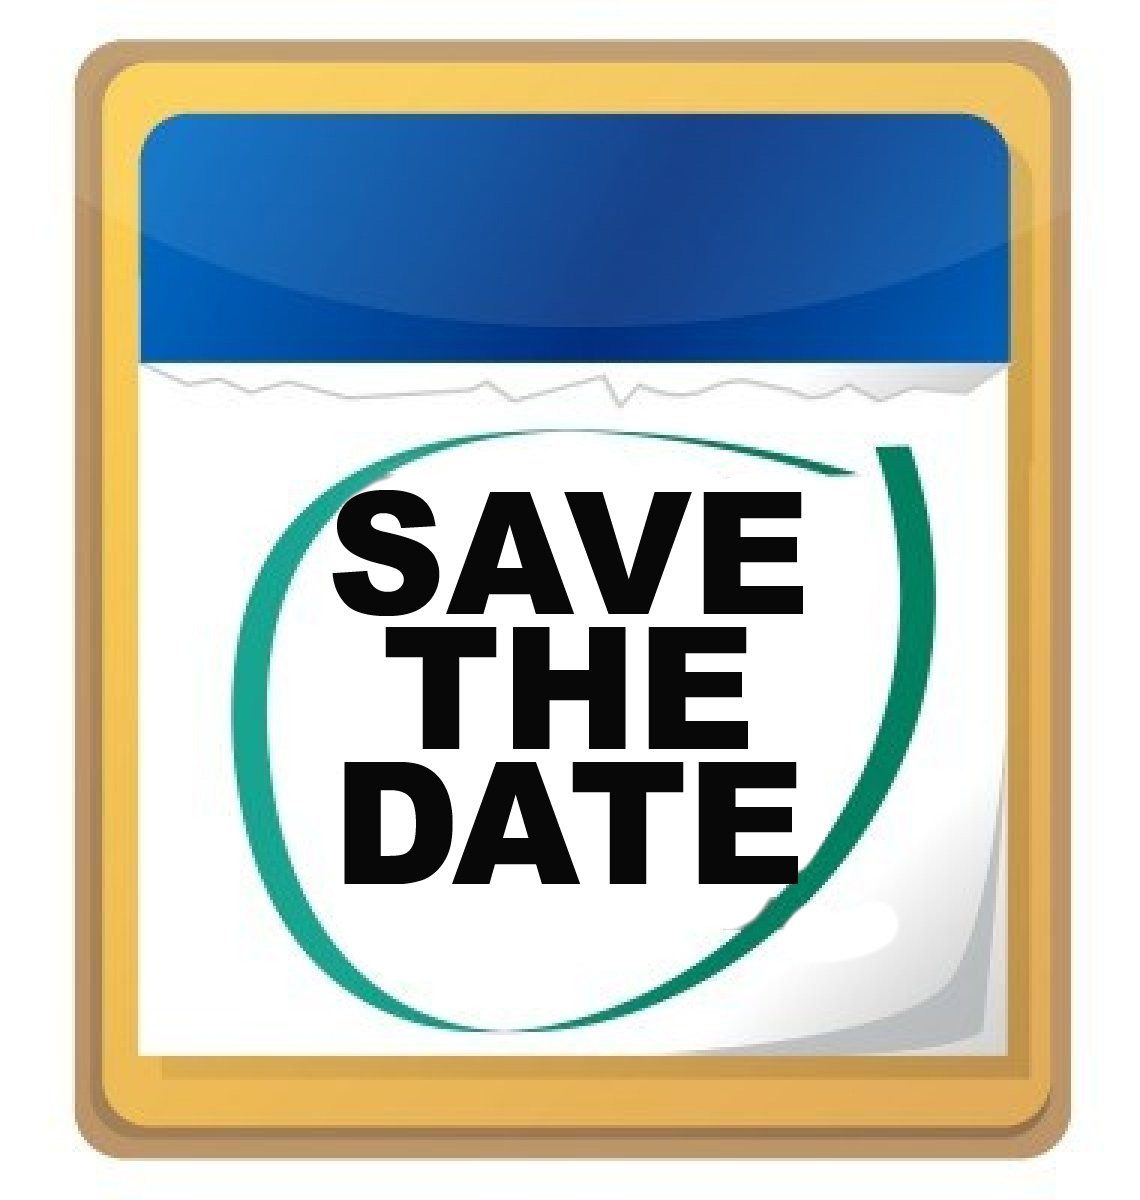 save the date clipart free hostted 2 clipartix